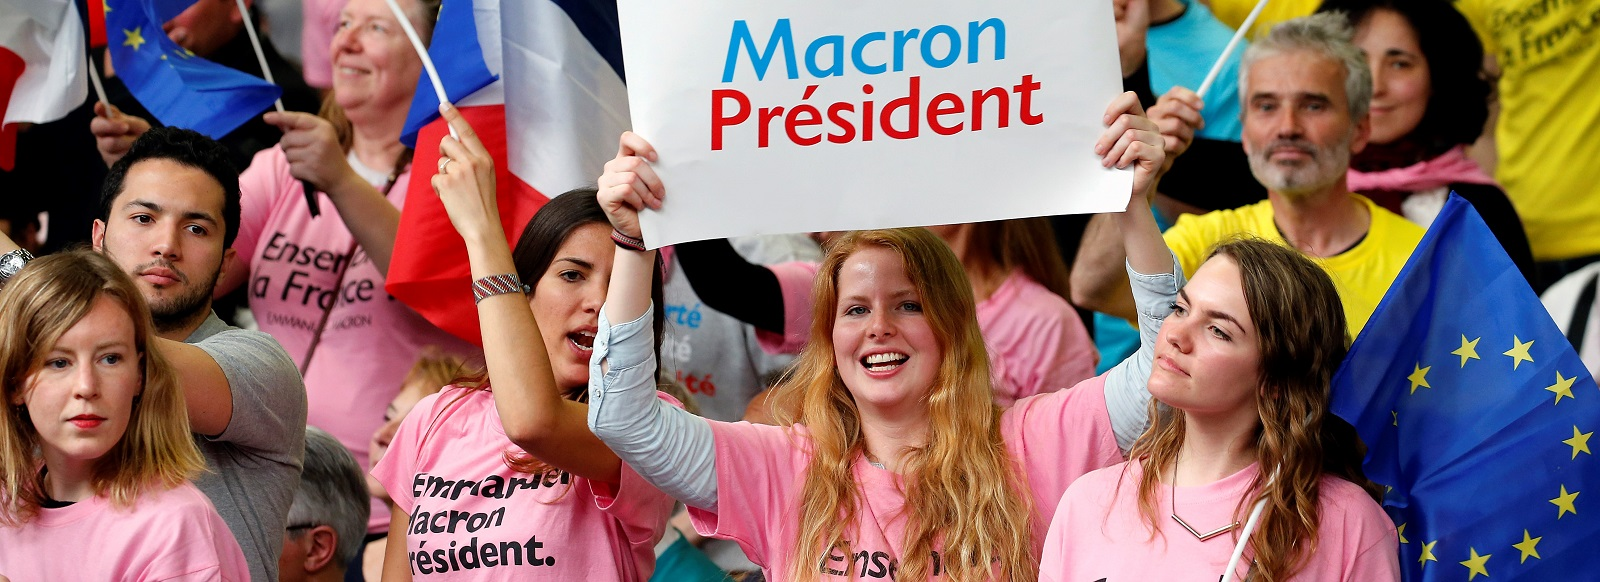 Emmanuel Macron supporters at a campaign rally in Paris on Monday. (Photo by Chesnot/Getty Images)